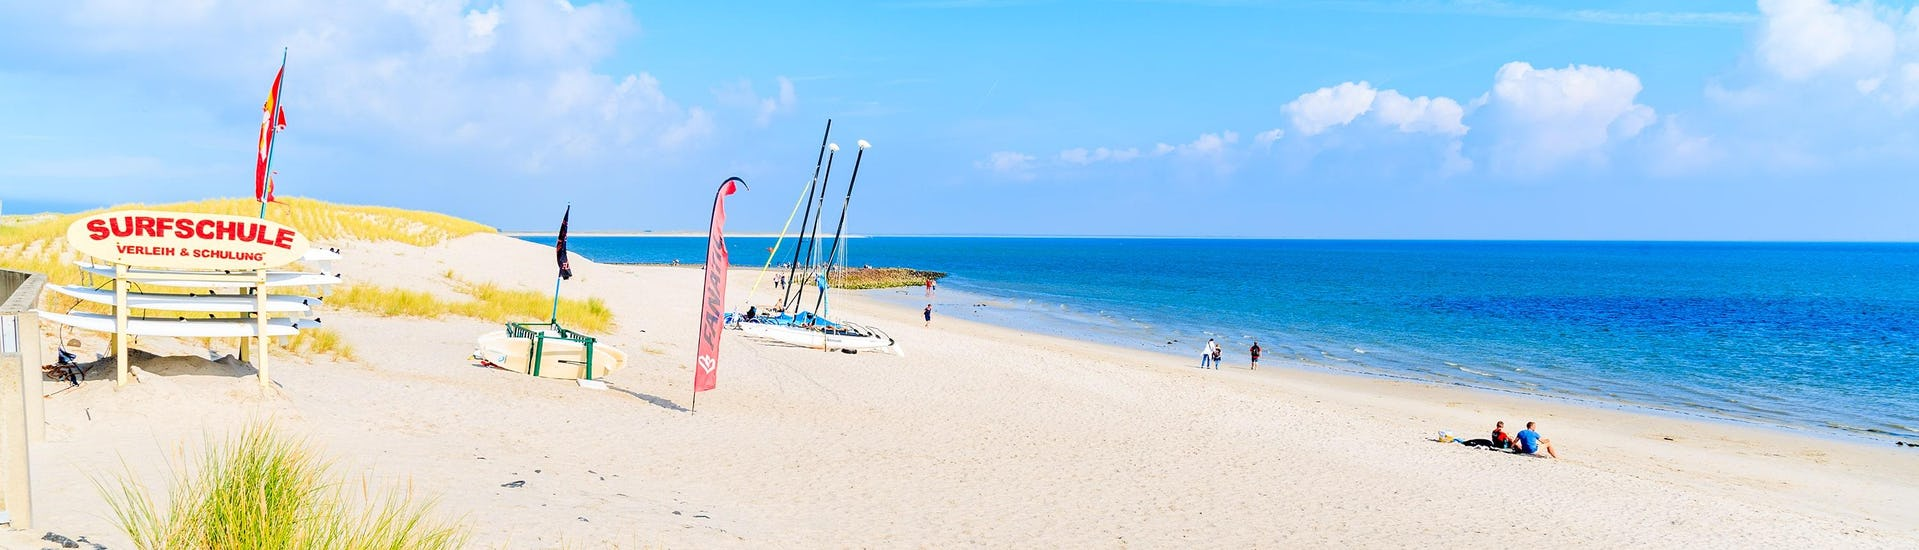 A young woman surfing in the clear blue waters of the surfing and SUP hotspot of Sylt.